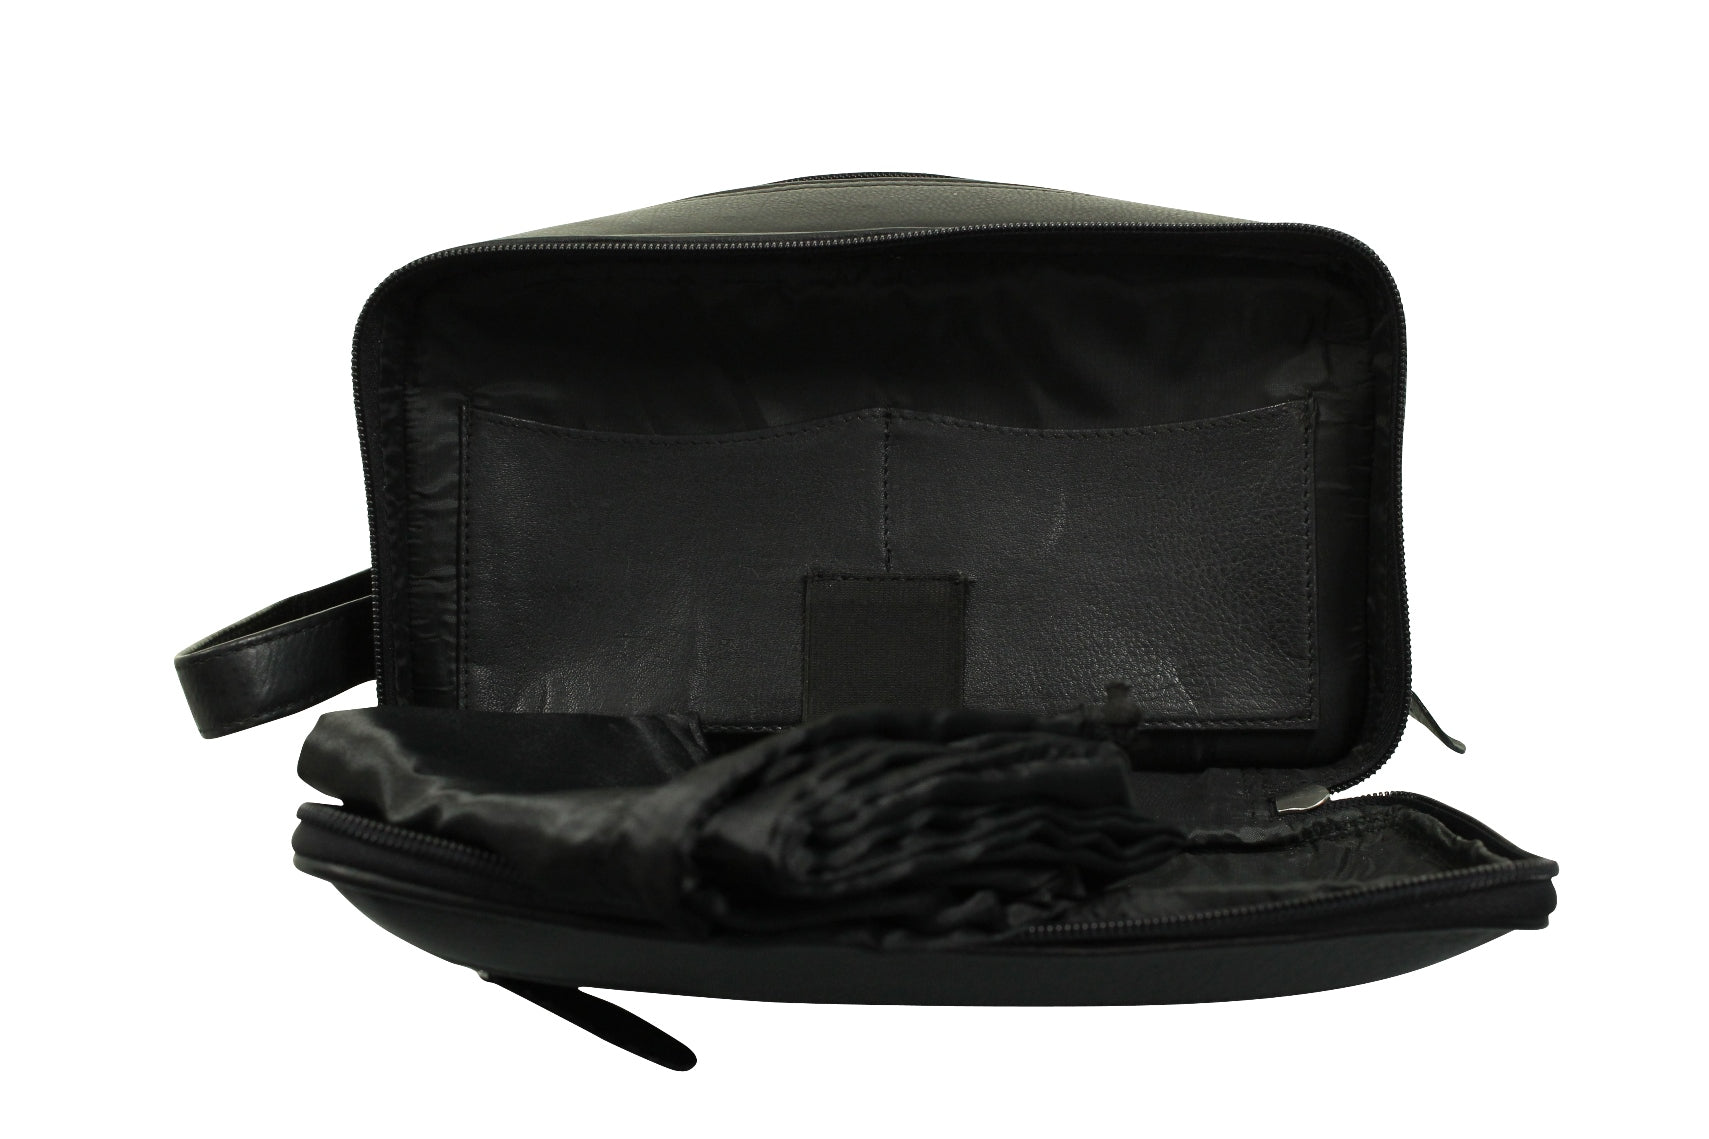 Real Leather Toiletry Wash Bag by Xact Clothing (Black)_07_20021_Black